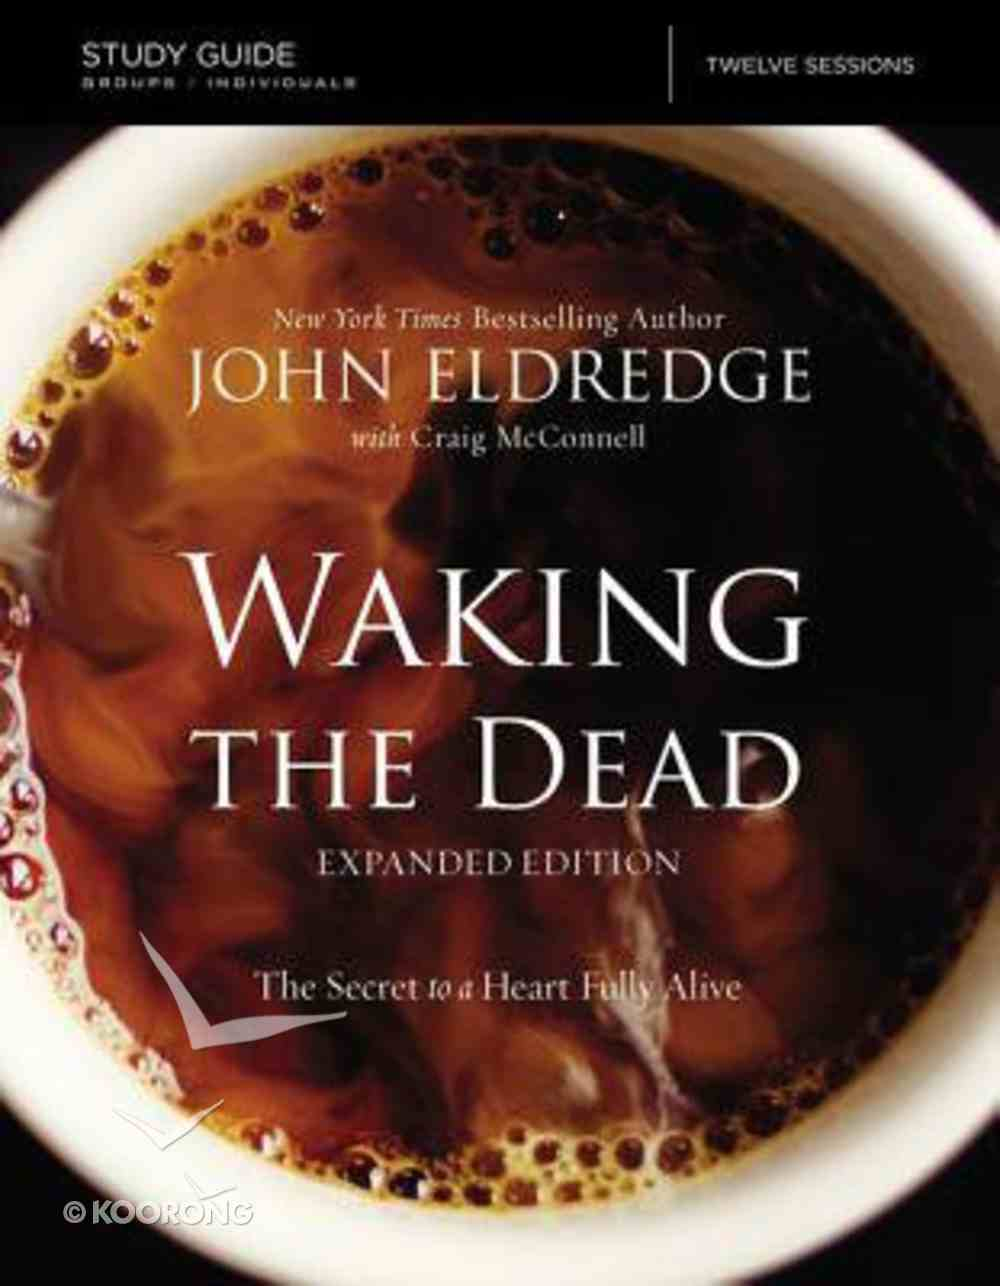 The Waking the Dead (Study Guide) Paperback